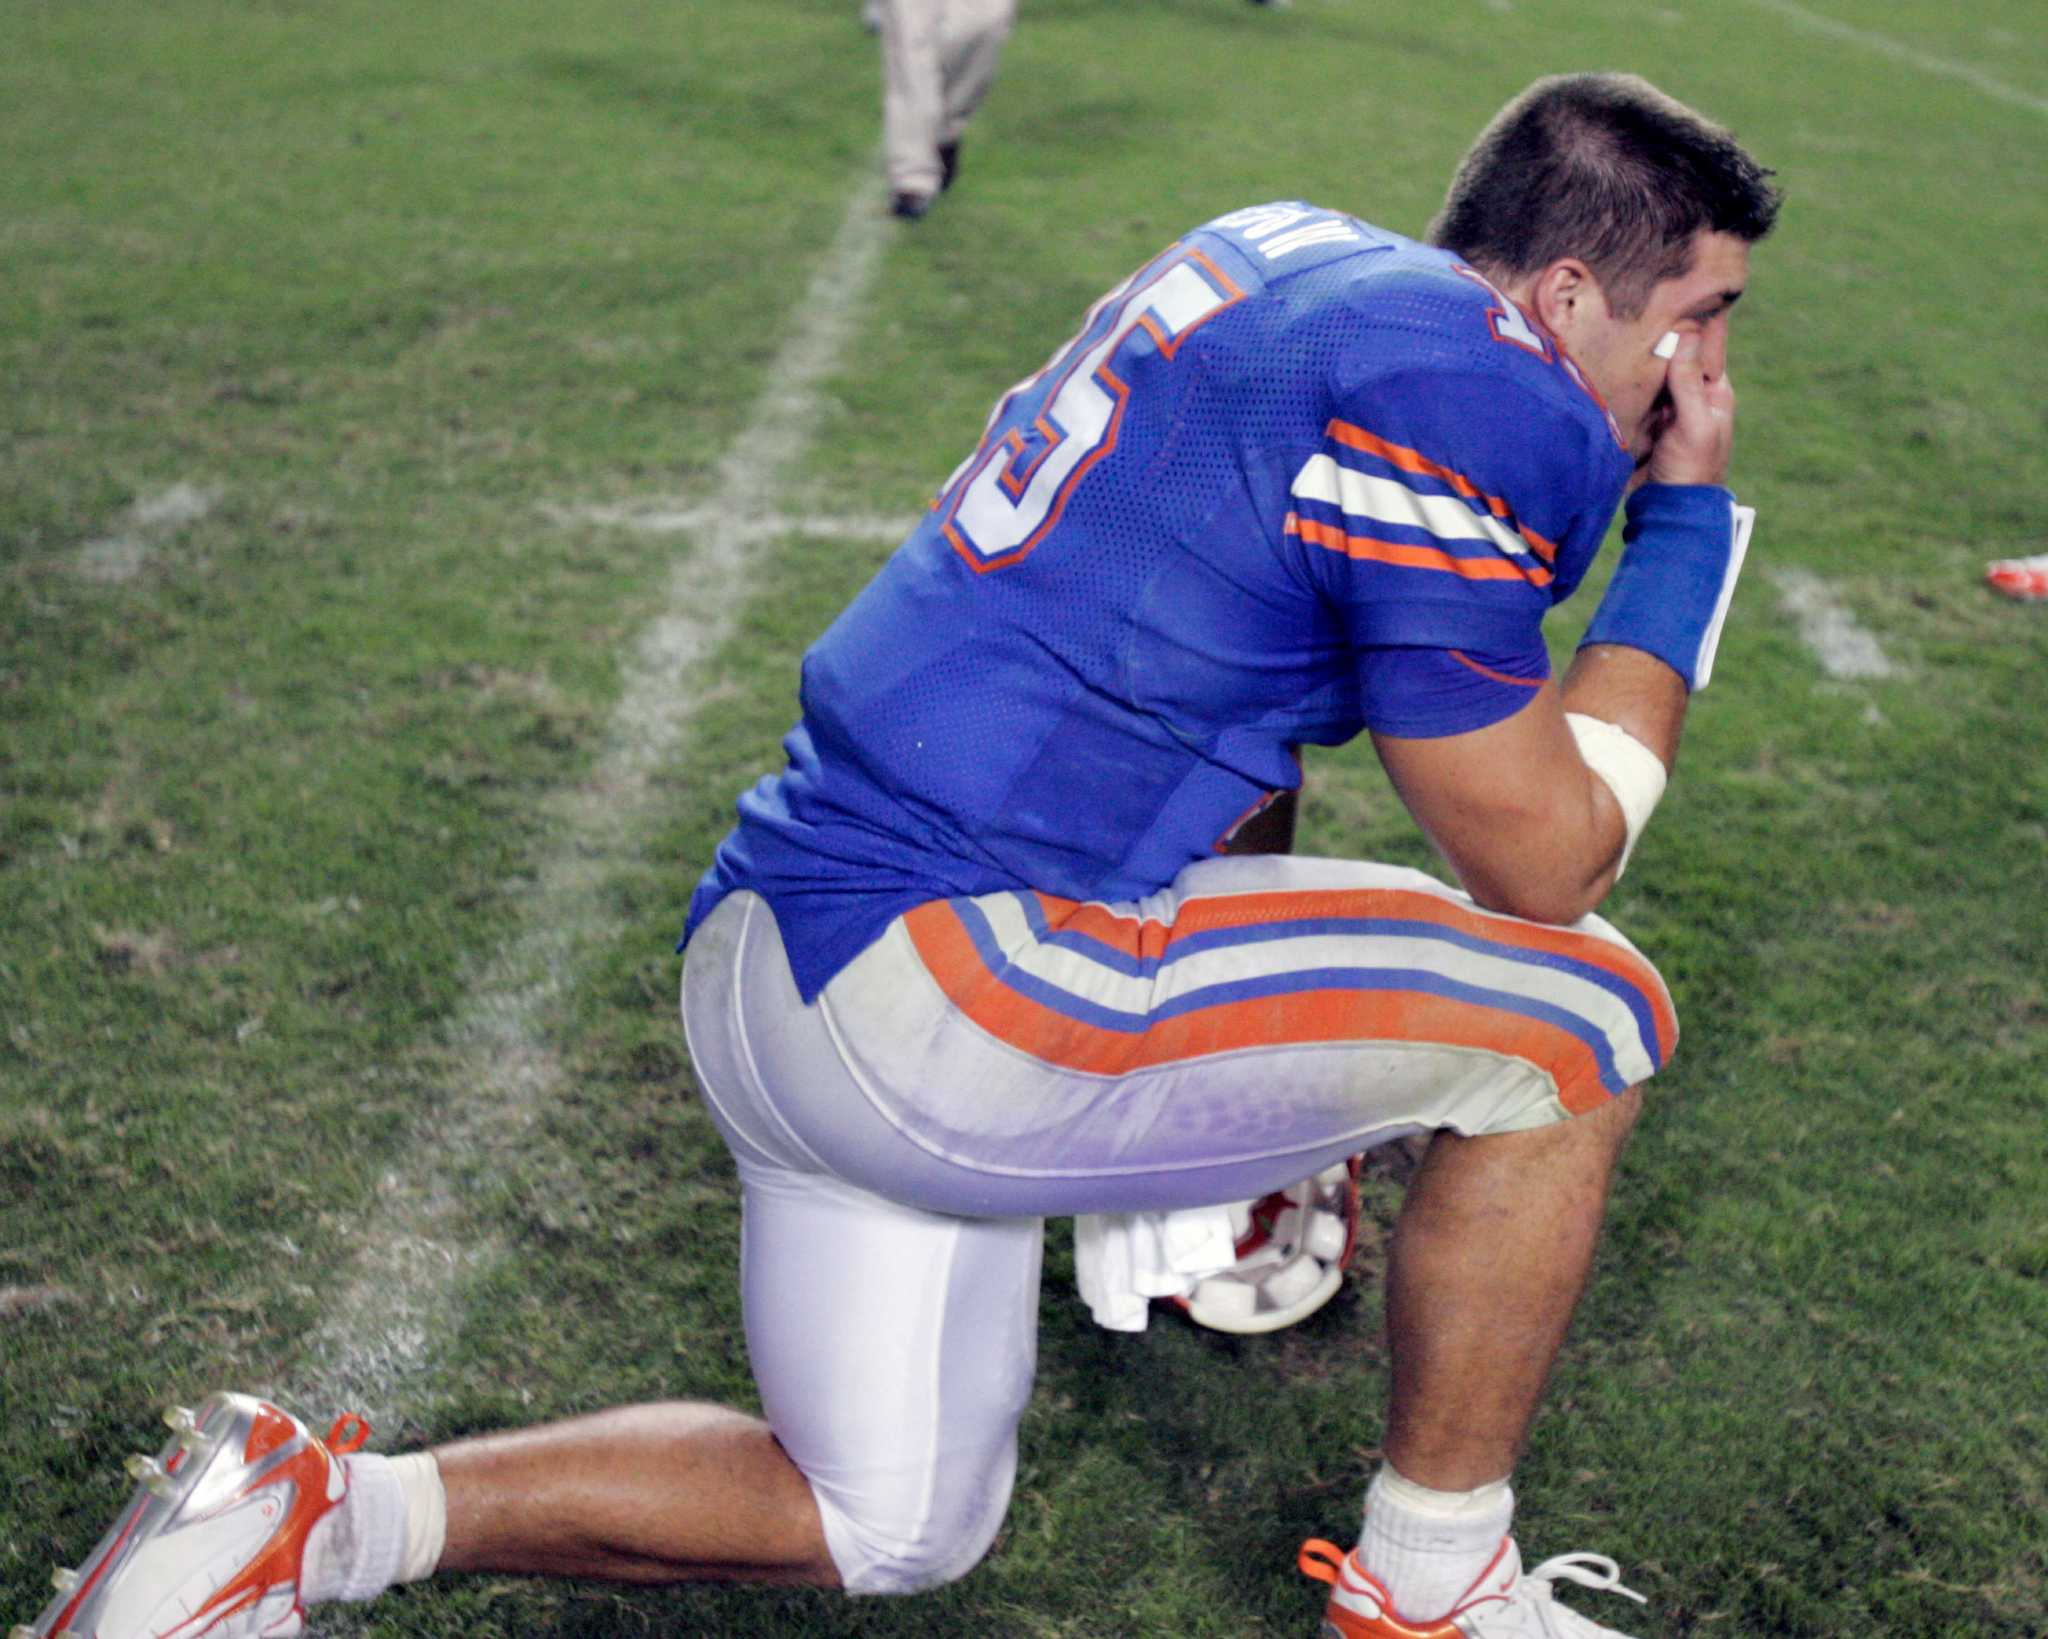 Panini readies tim tebow's first jets card